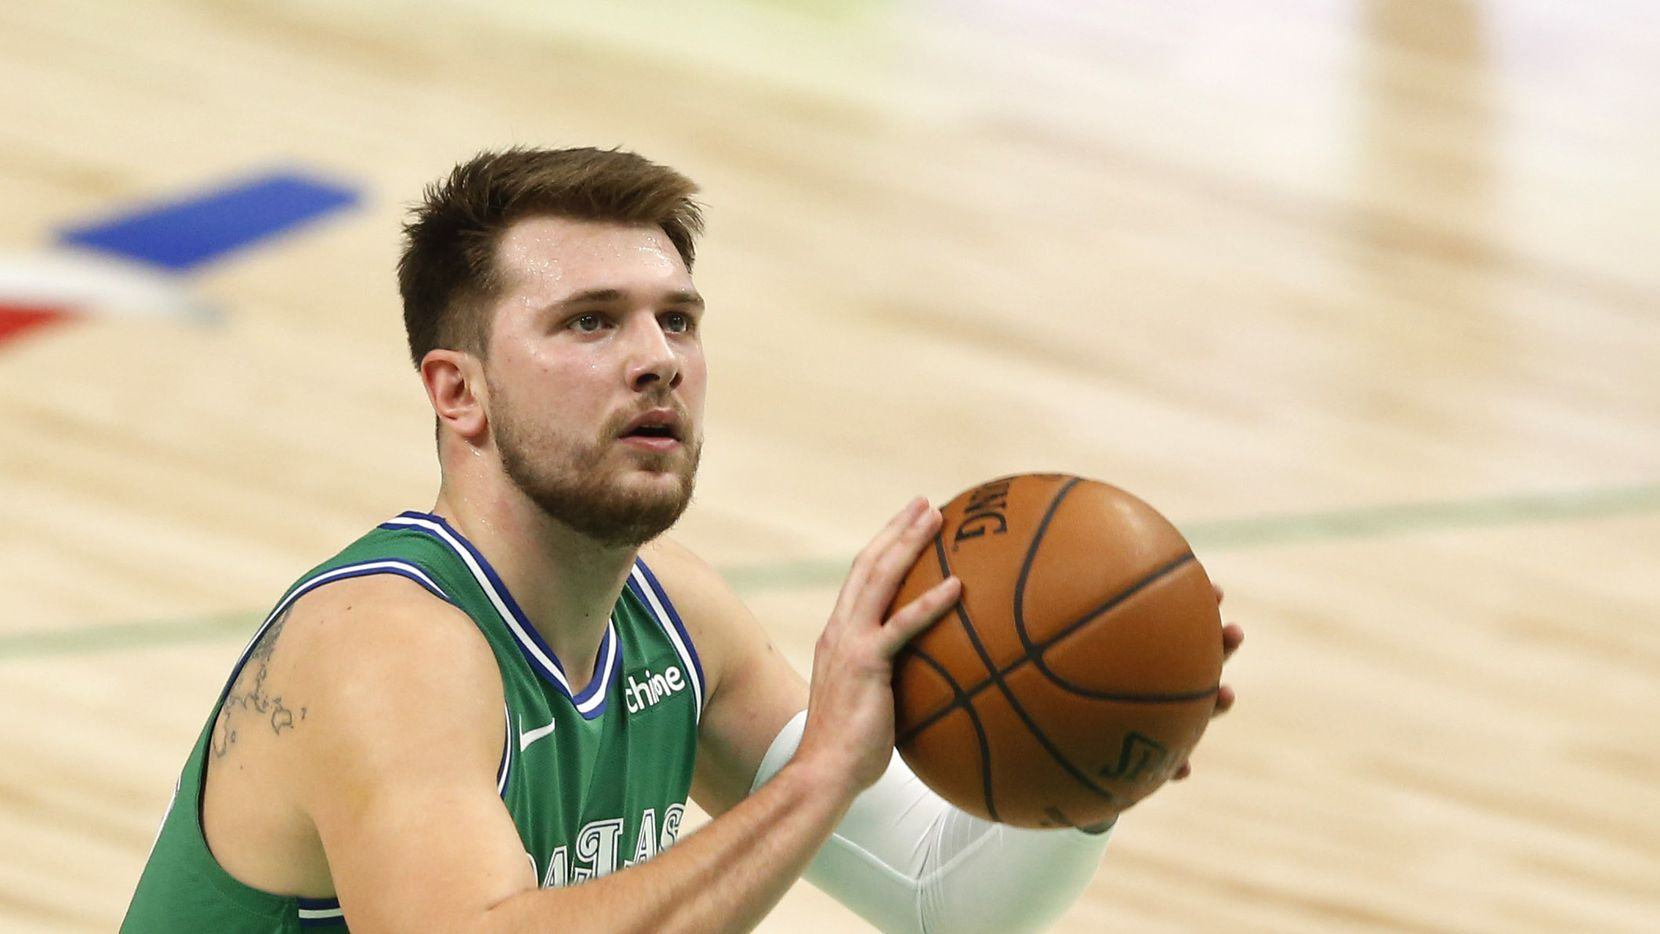 Dallas Mavericks guard Luka Doncic (77) attempts a free throw in a game against the Charlotte Hornets during the first quarter of play in the home opener at American Airlines Center on Wednesday, December 30, 2020 in Dallas.